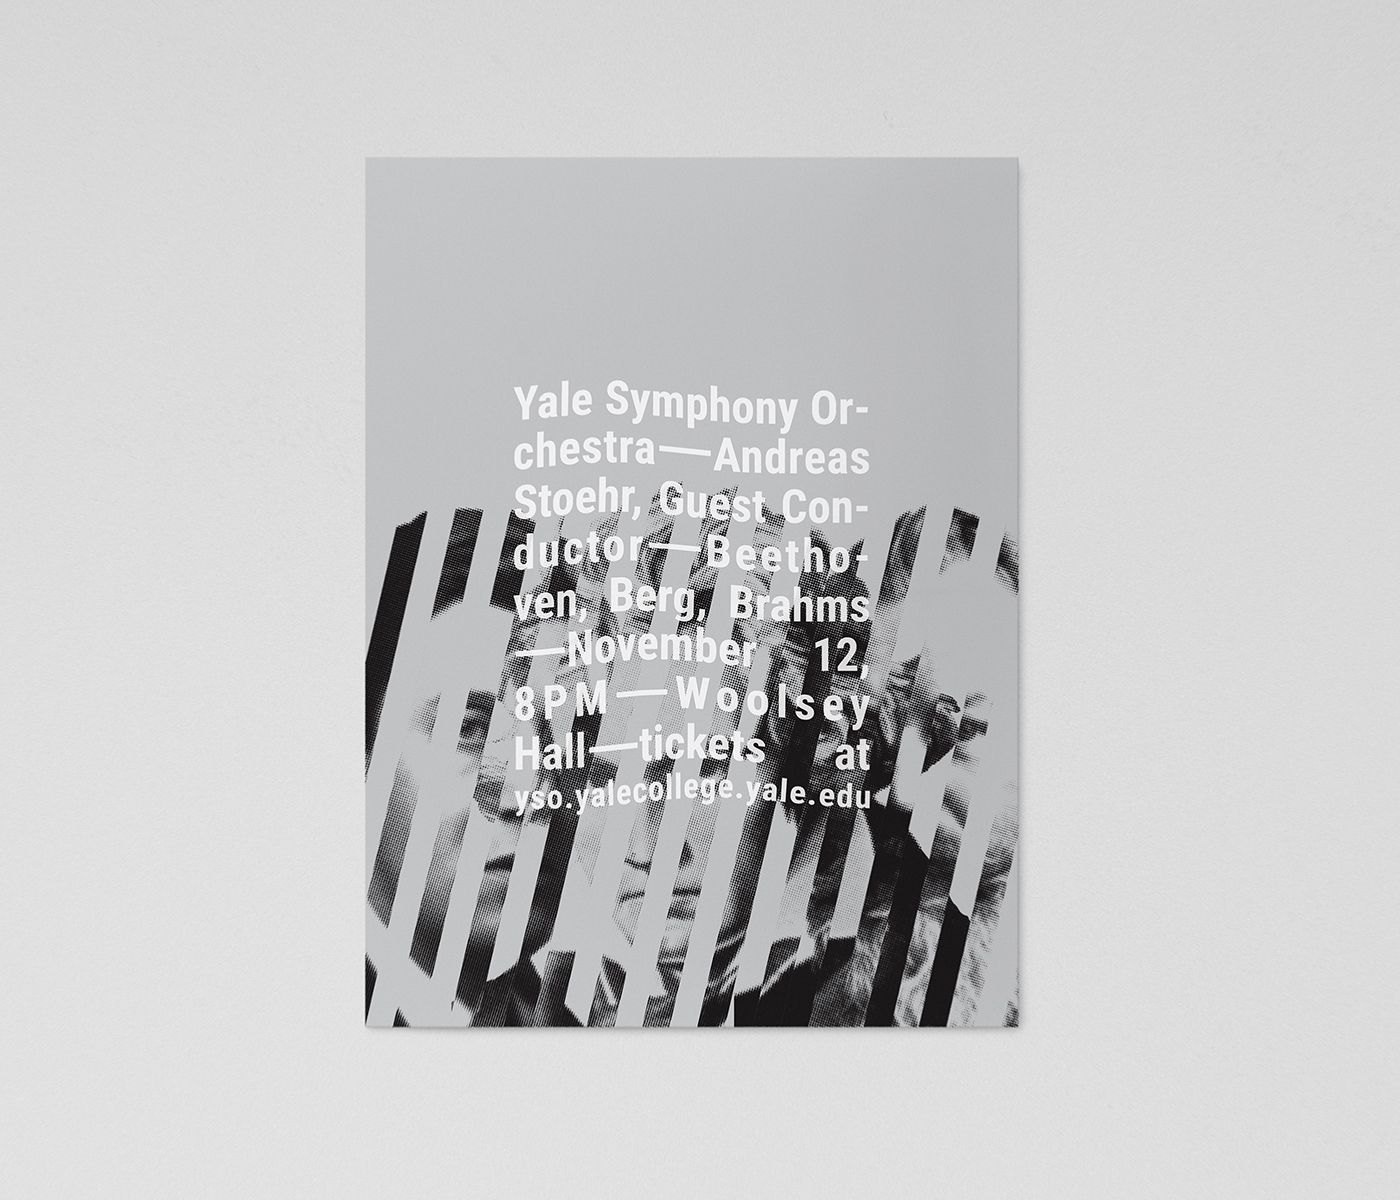 Minimalist modern poster design for The Yale Symphony Orchestra's concert Three Viennese Bees: collaged images of Beethoven, Berg, and Brahms on a gray background, overlaid with wavy white typography.